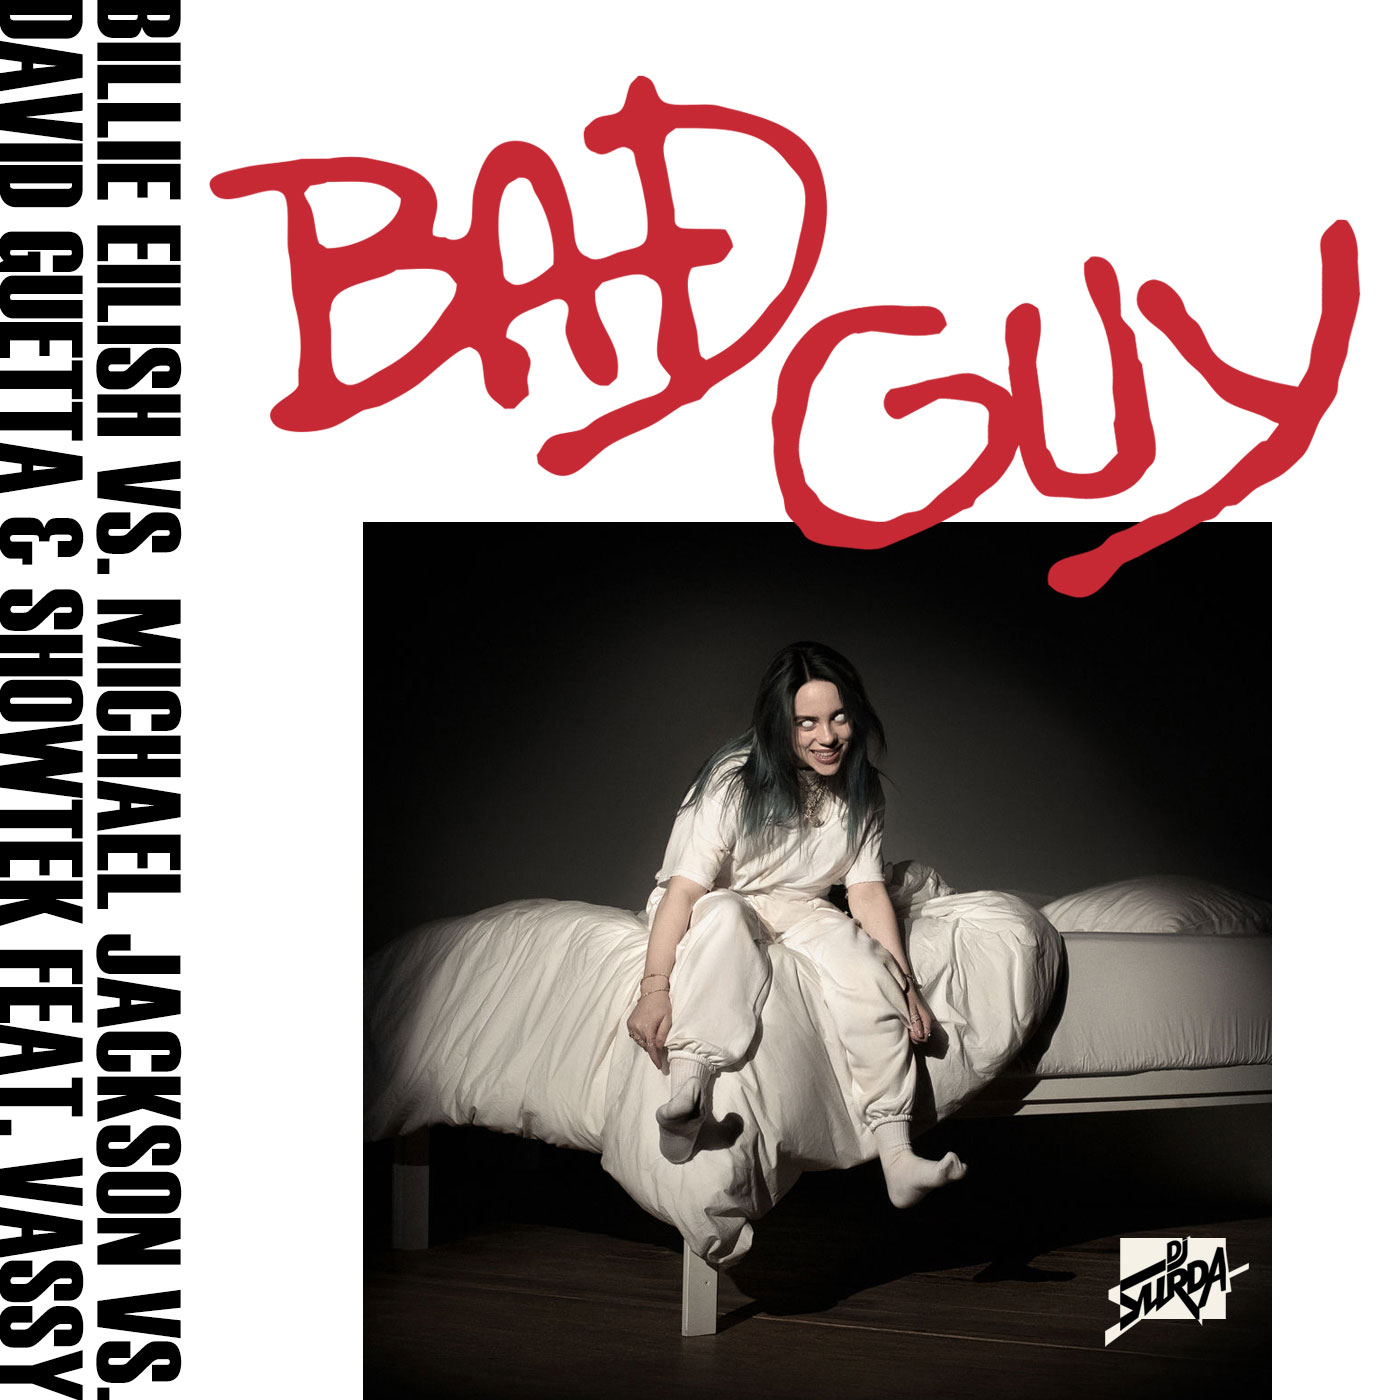 211 Dj. Surda – BAD guy (Mashup) (Billie Eilish, Michael Jackson & David Guetta)